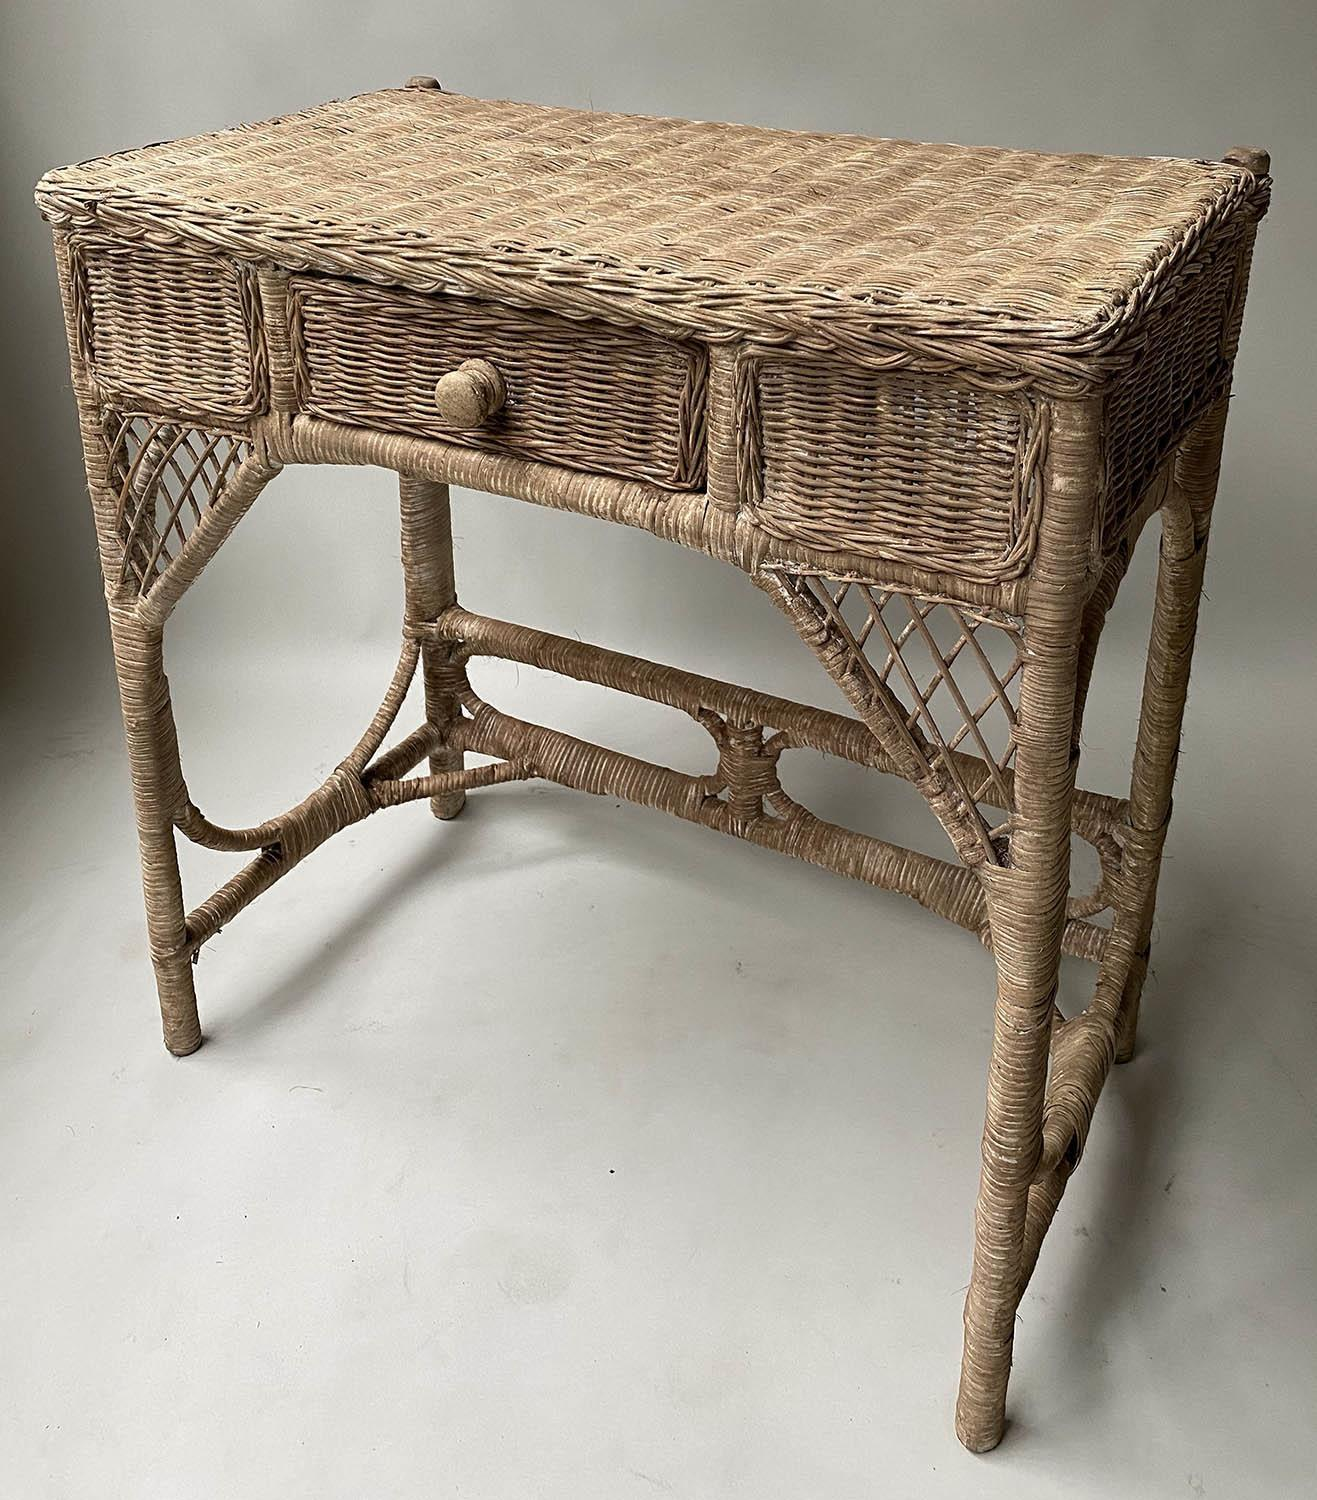 CONSOLE/HALL TABLE, vintage rattan and cane woven, with frieze drawer, 76cm W x 77cm x 42cm. - Image 5 of 7